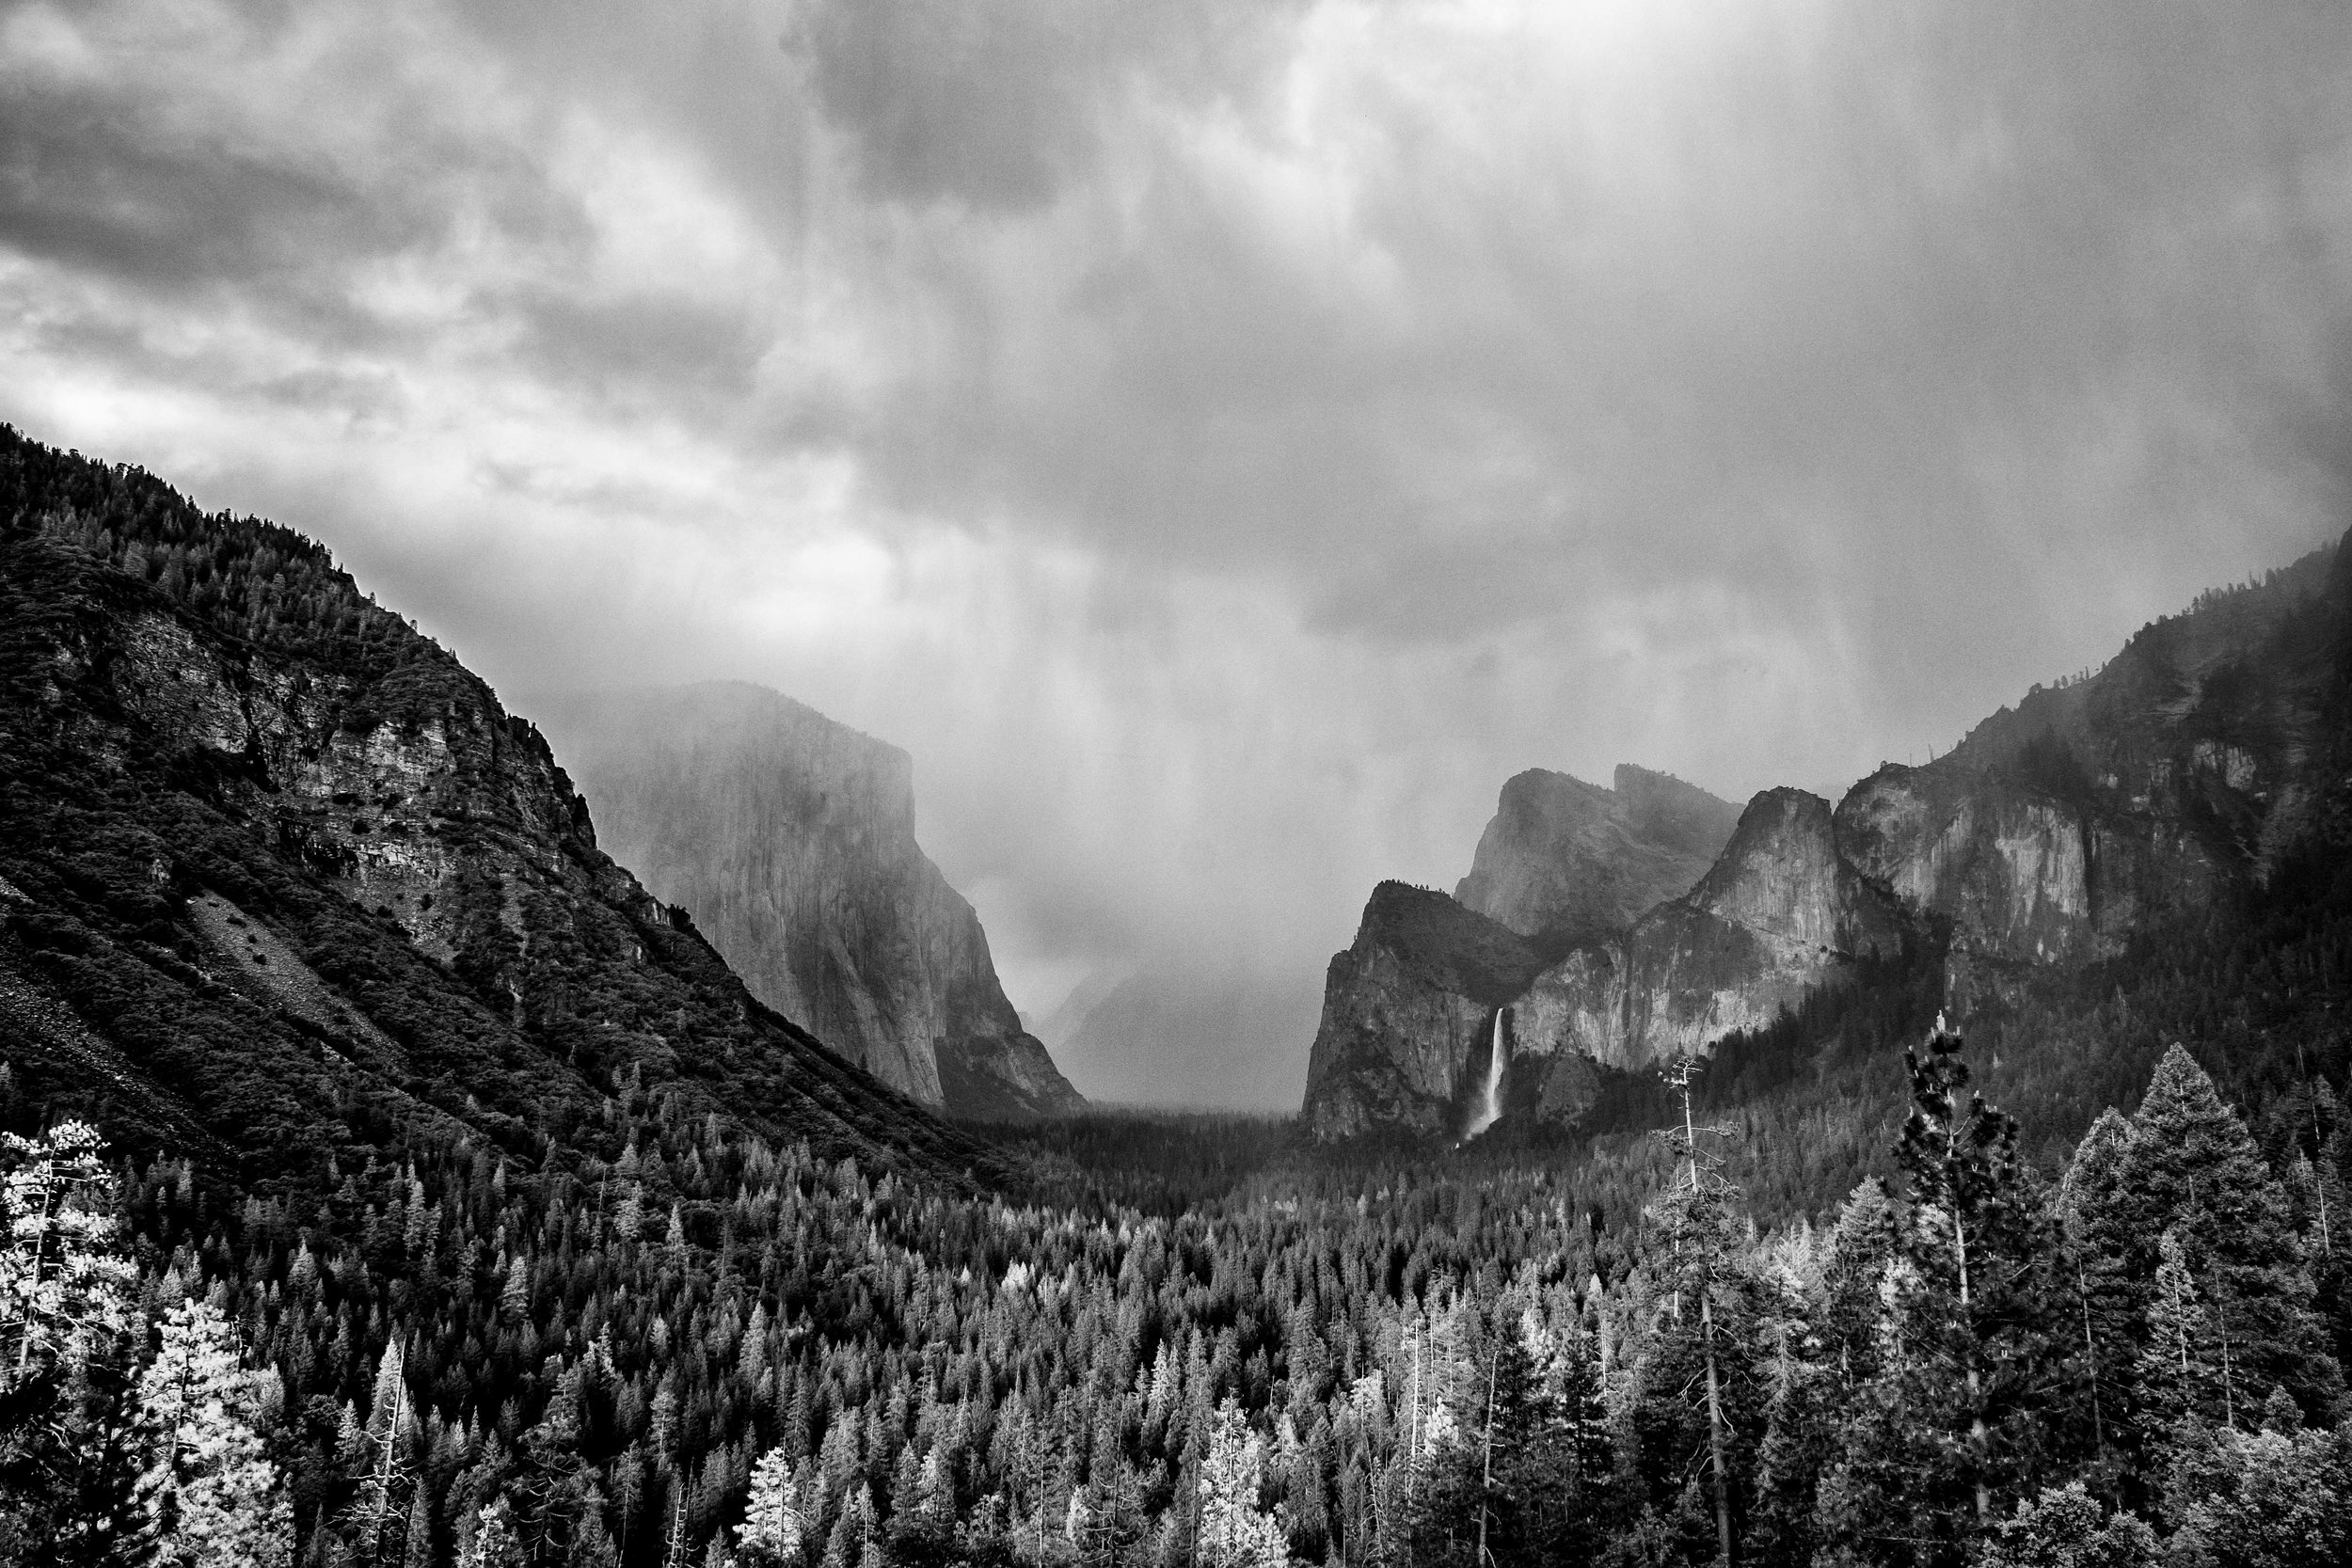 20160521-JI-Yosemite National Park-_DSF8838-Edit.jpg